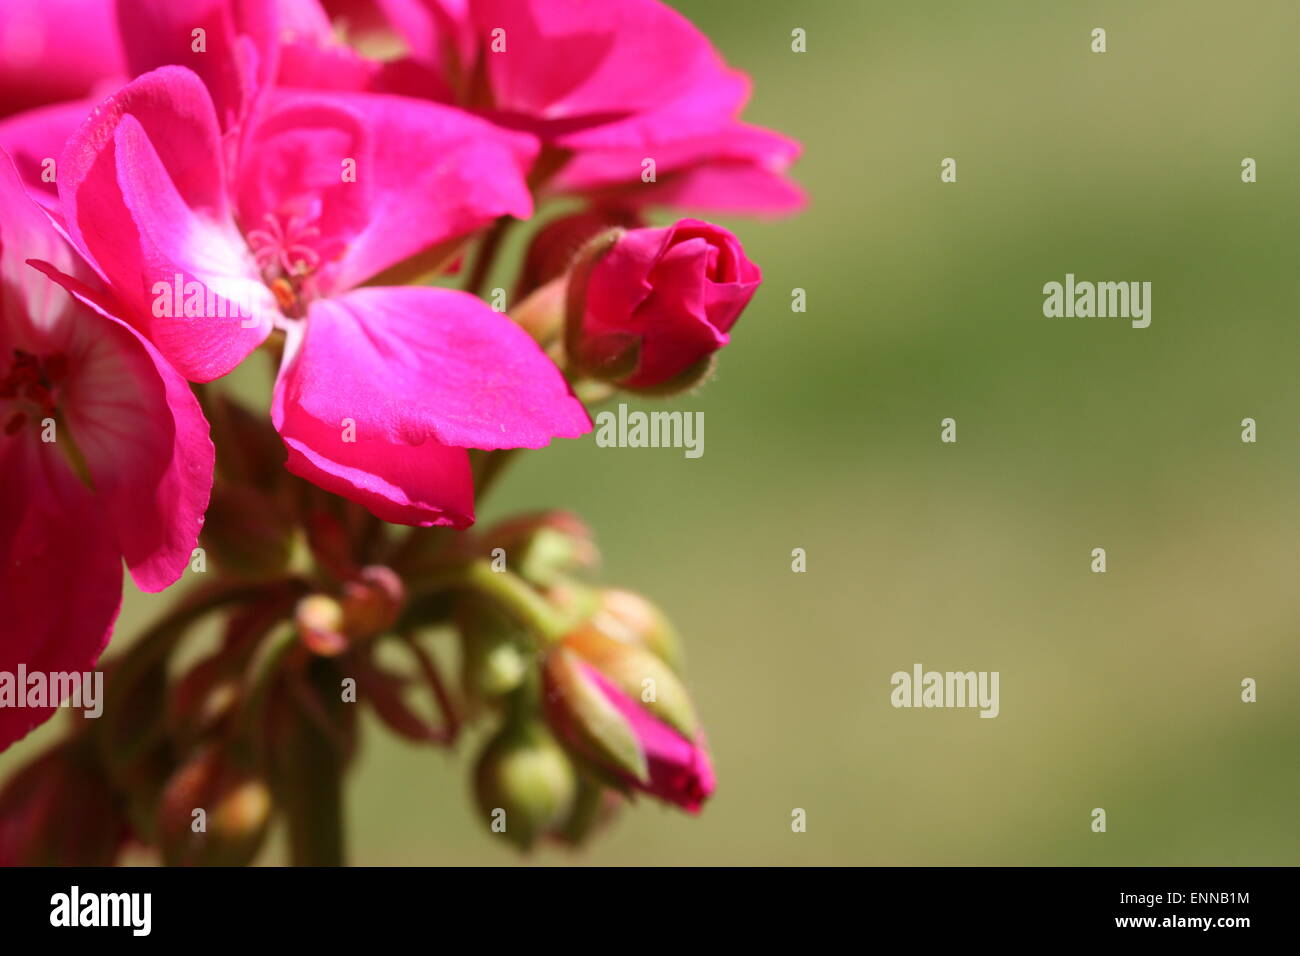 Pink geranium flowers and buds in summer season Stock Photo